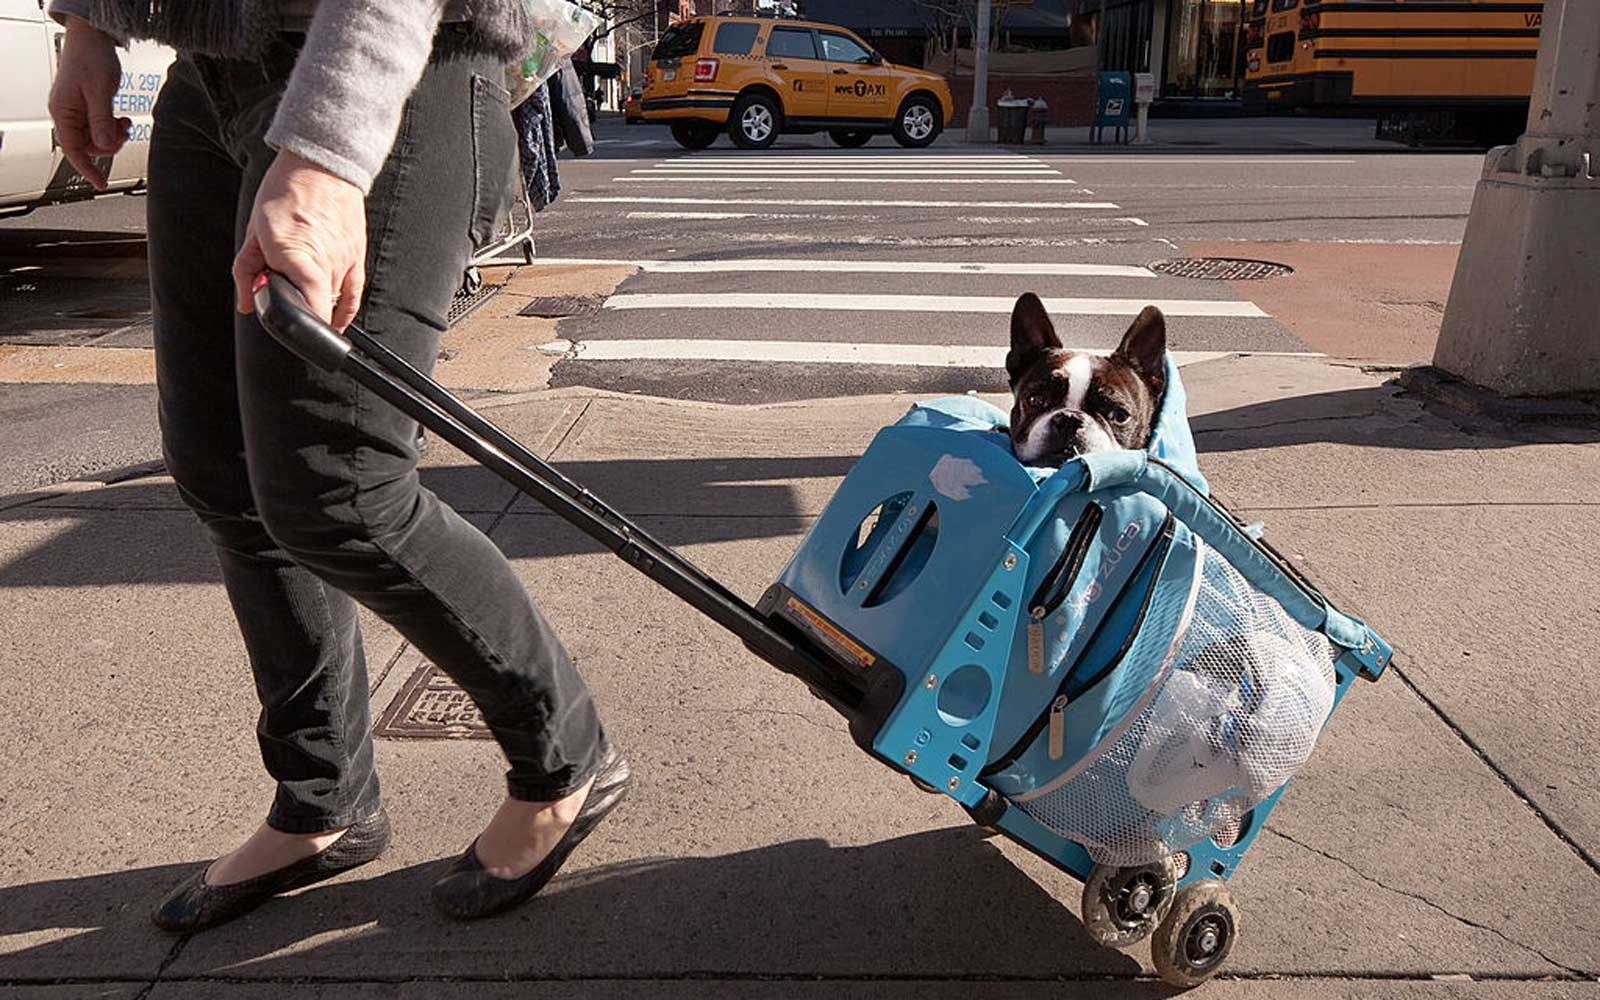 Dogs have to be in a carrier to ride the NYC subway, so big dog owners are getting creative